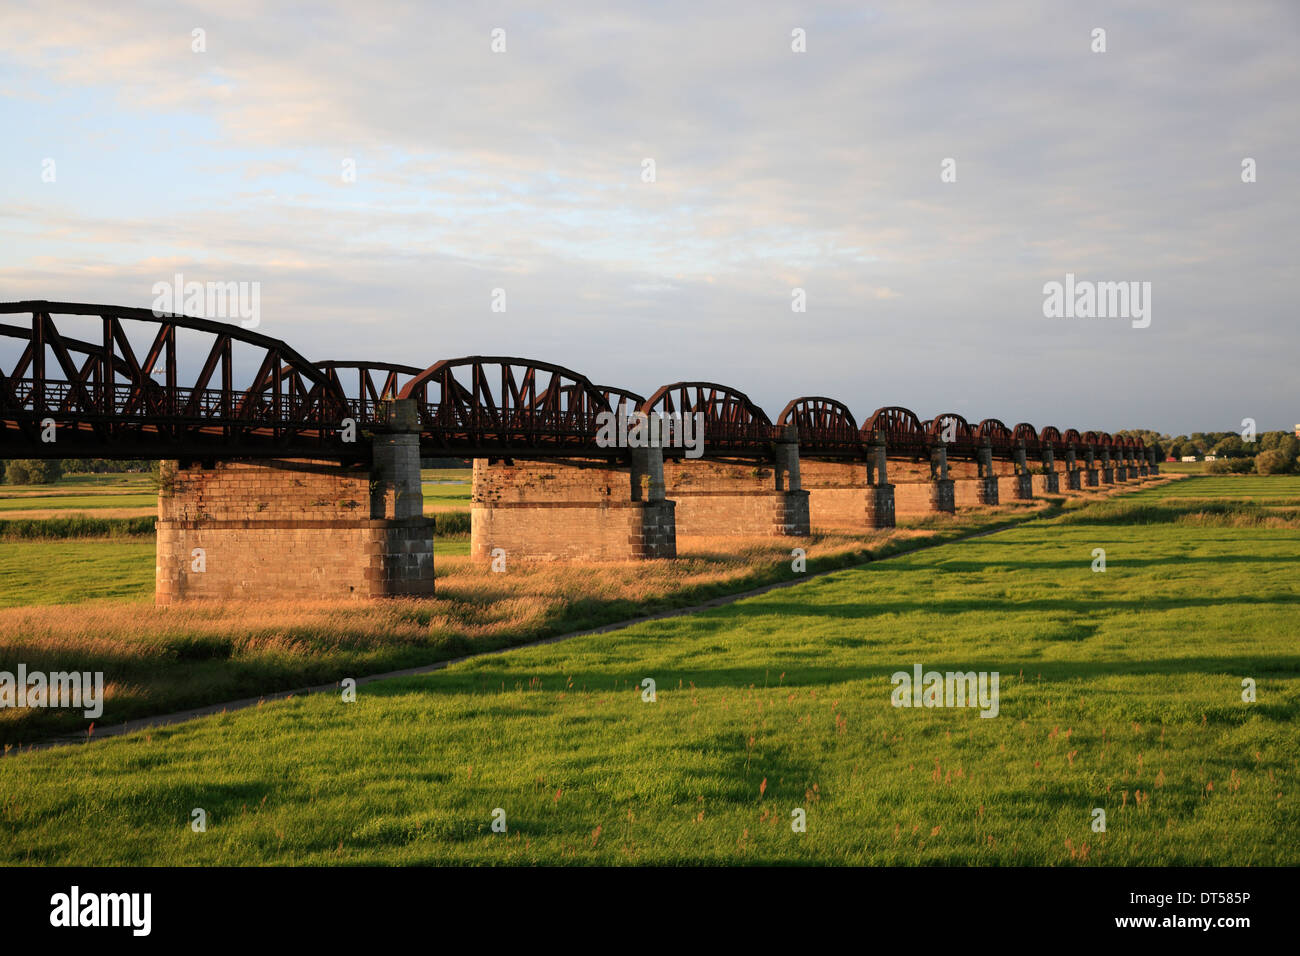 Old rail bridge at Doemitz-Kaltenhof, river Elbe, Lower Saxony, Germany, Europe - Stock Image